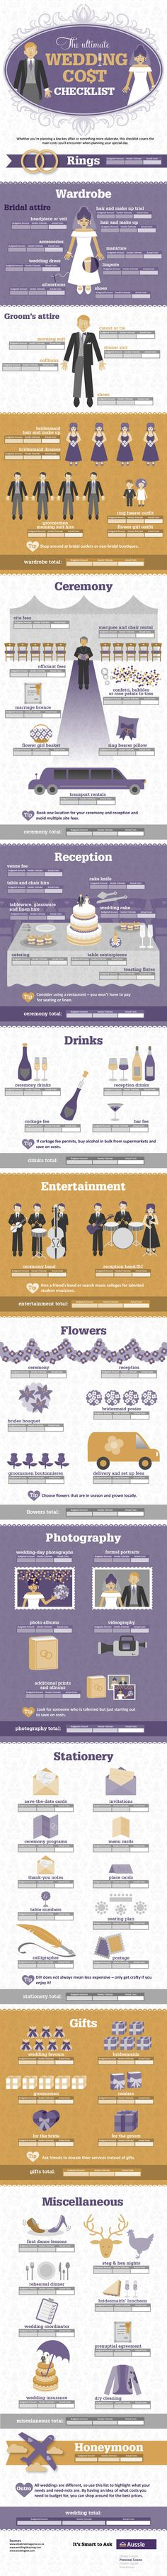 The Ultimate Wedding Cost Checklist [INFOGRAPHIC]